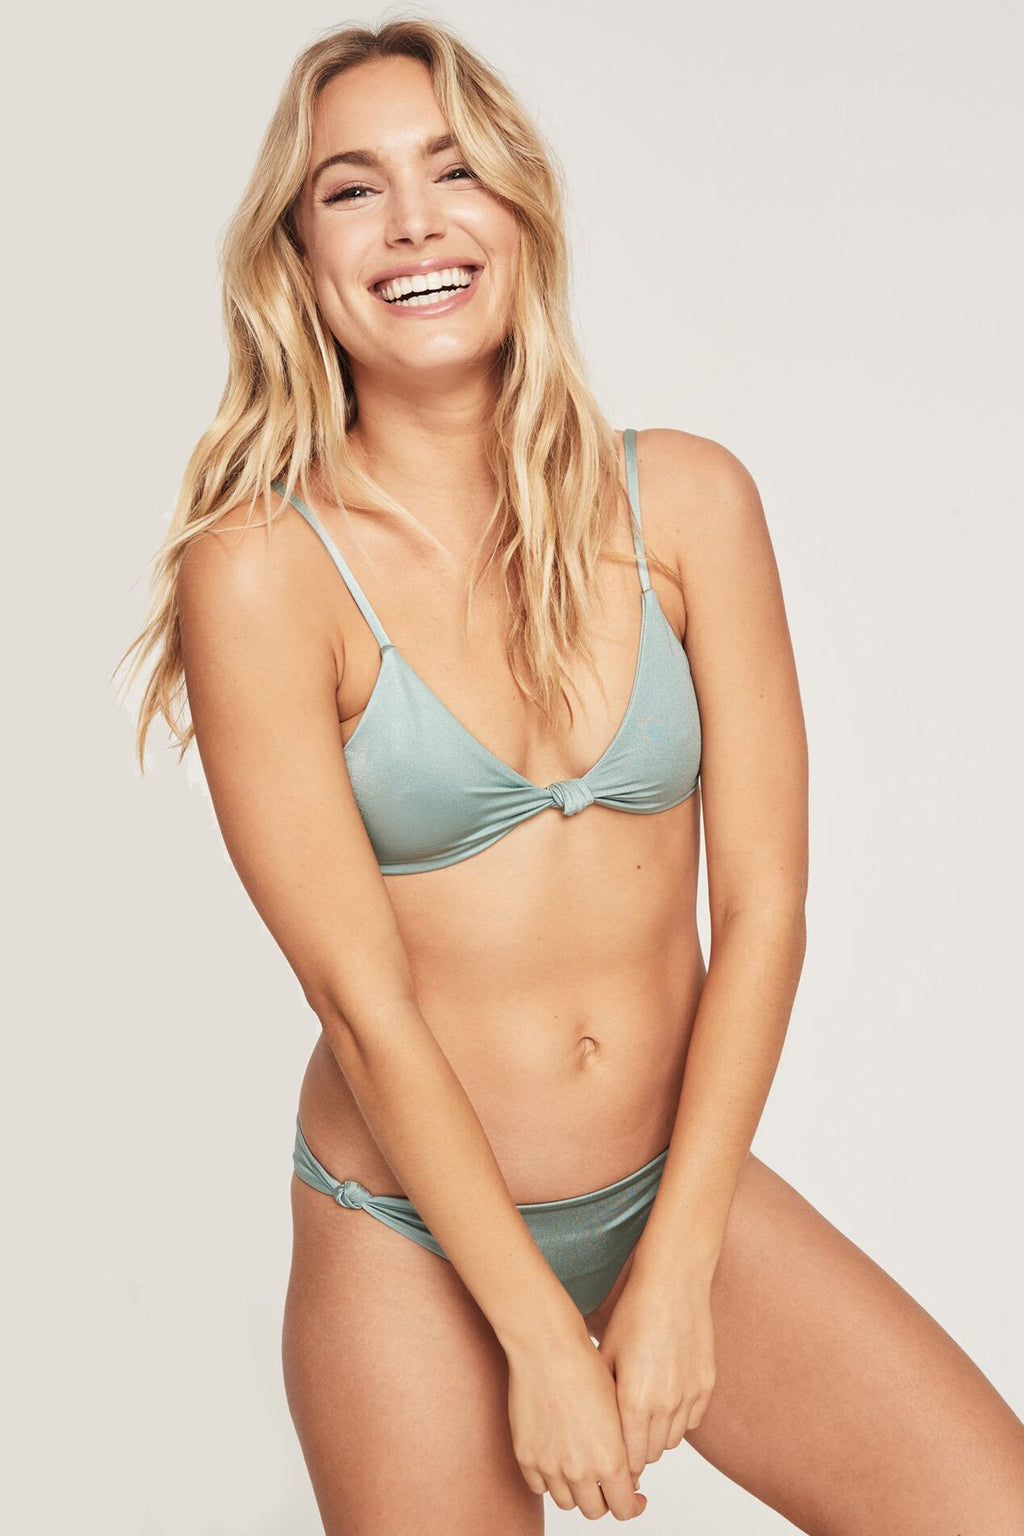 model is wearing light, dusty green spiritual gangster triangle bikini top. The Cozumel bikini top in sage features a knot detail at the centre and spaghetti straps.